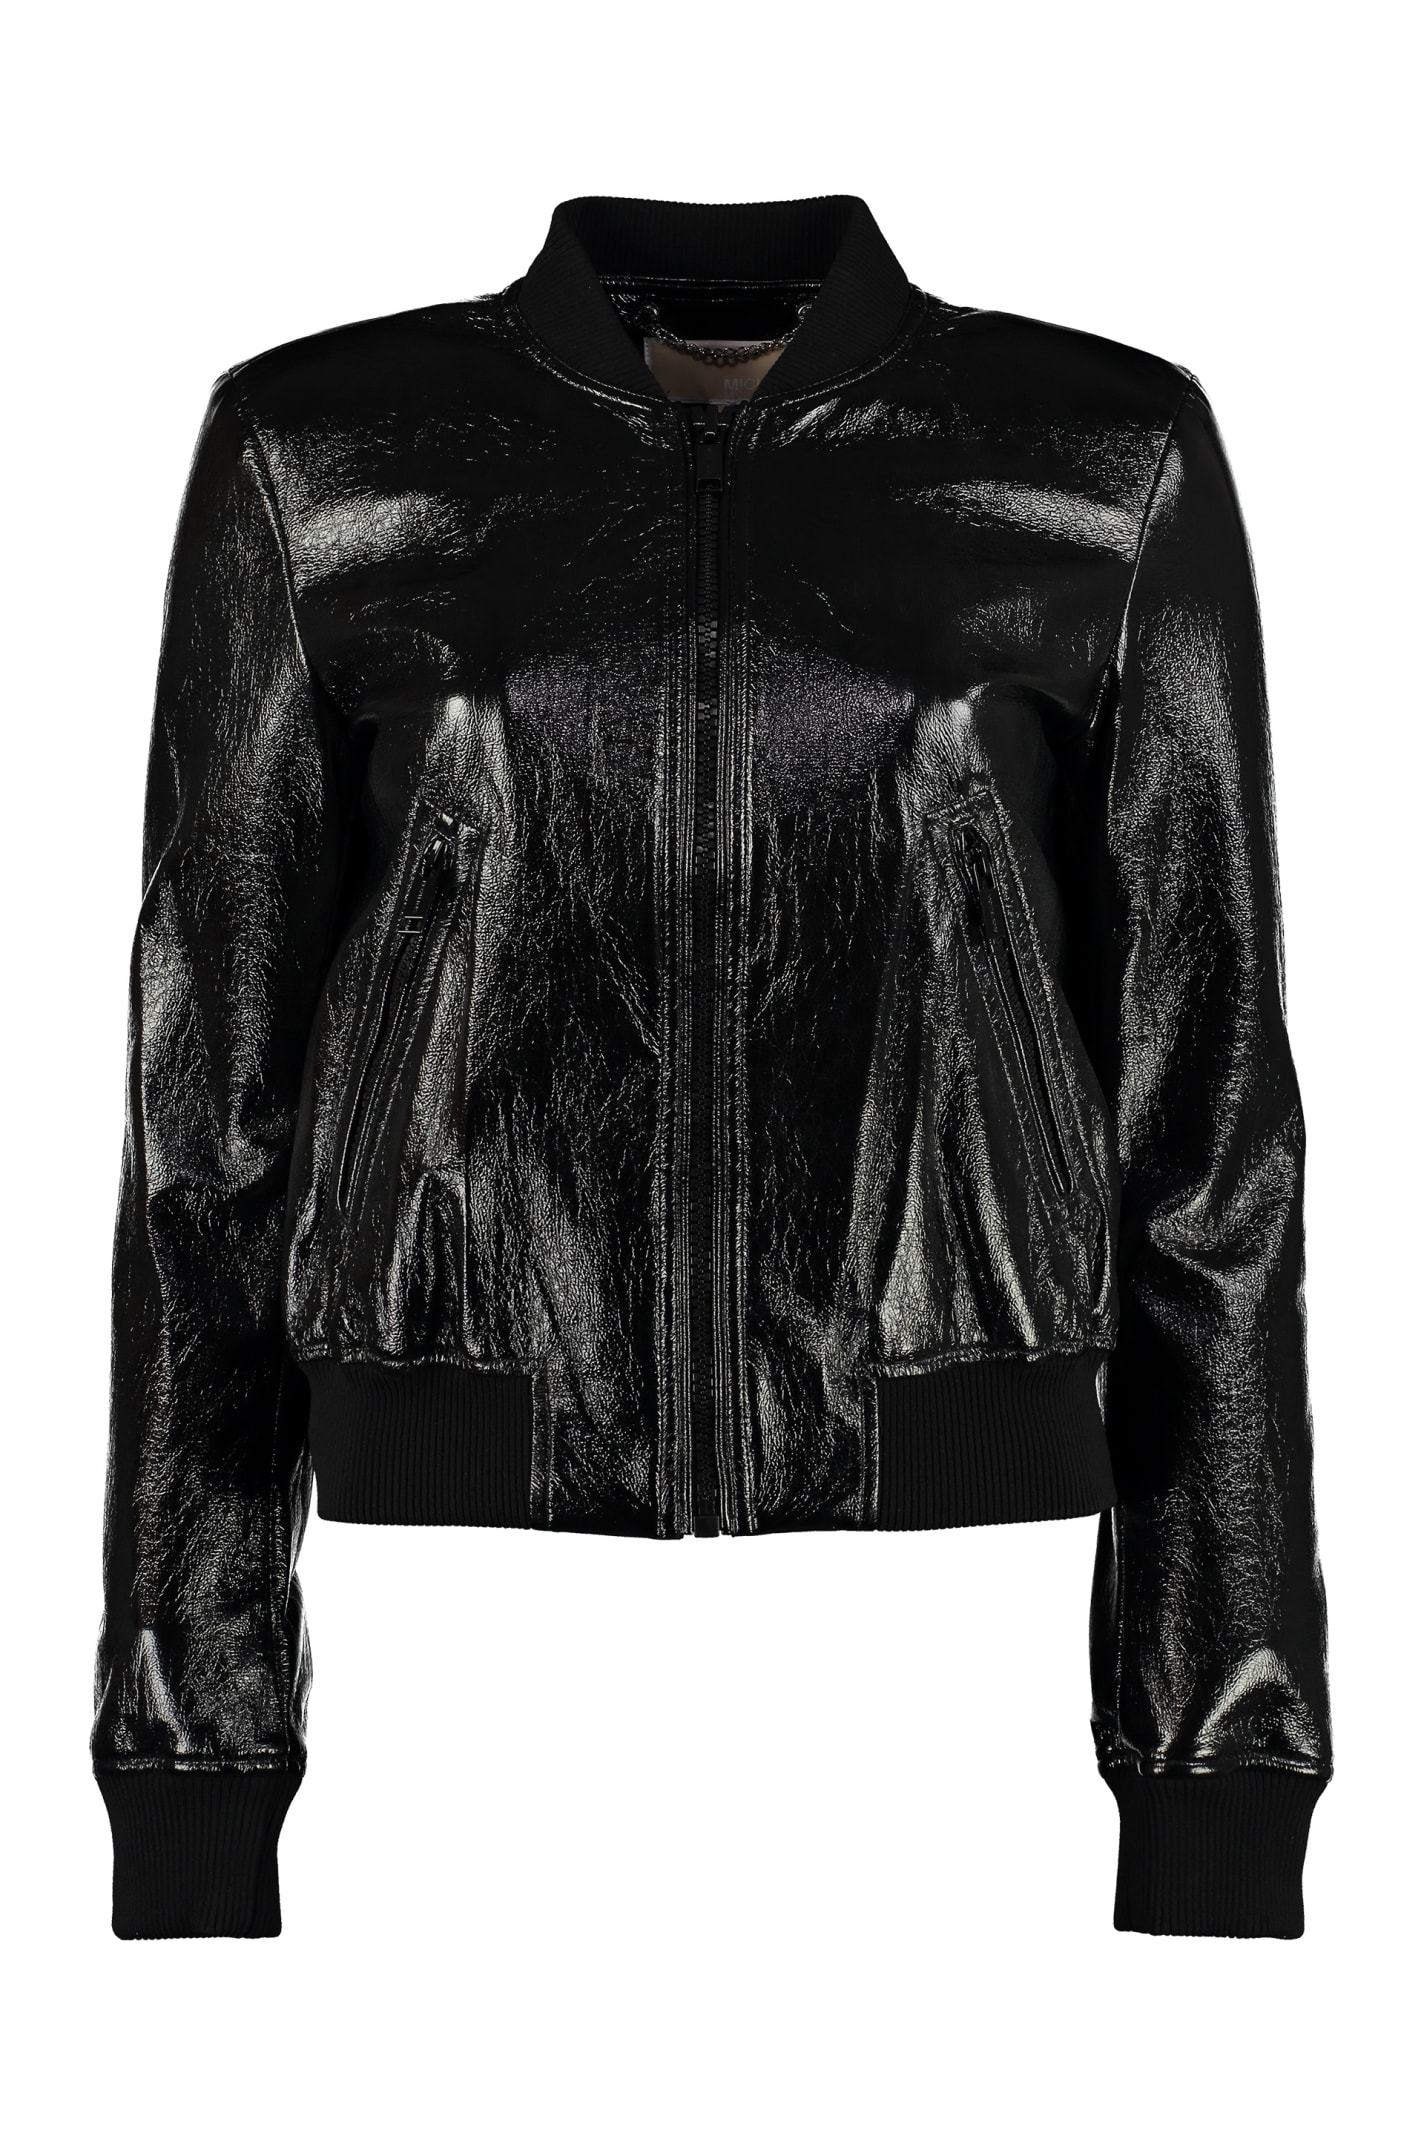 wholesale online choose latest offer Best price on the market at italist | MICHAEL Michael Kors MICHAEL Michael  Kors Faux Leather Jacket